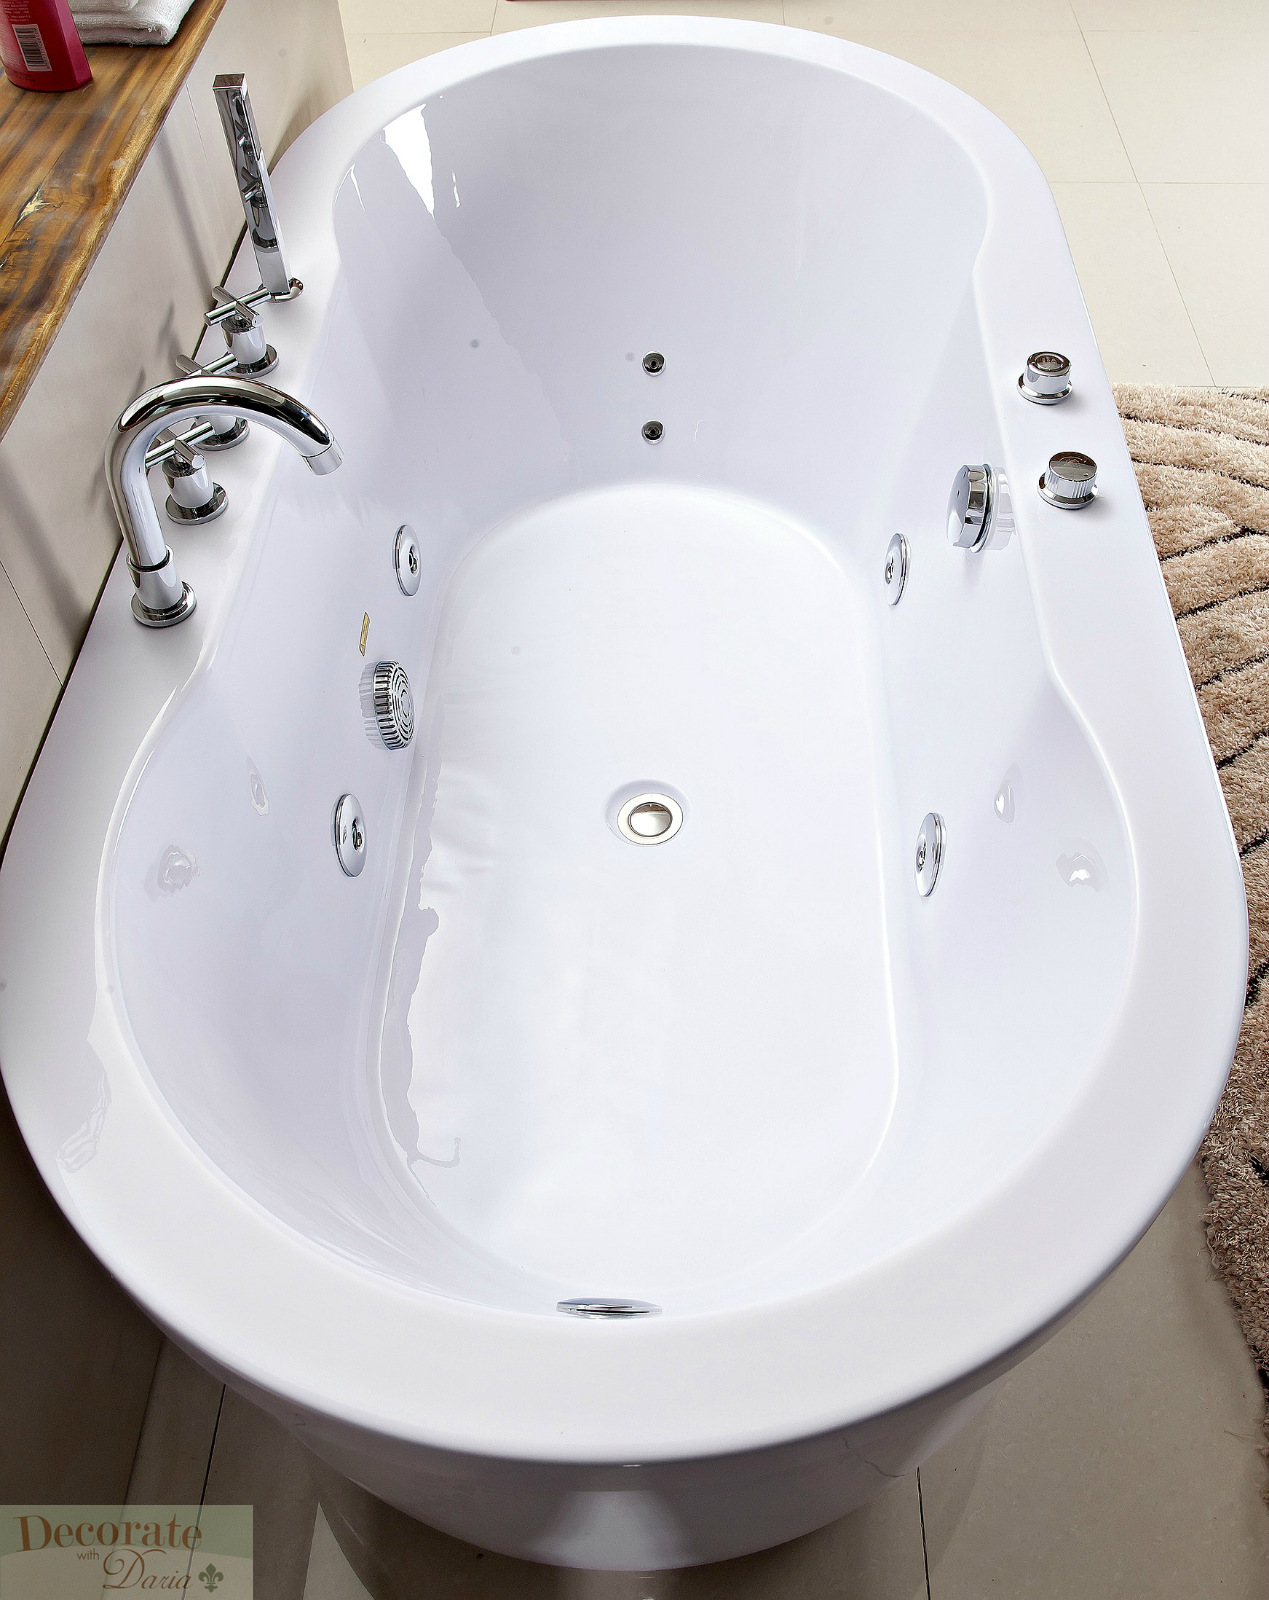 Bathtub Freestanding Whirlpool Jetted Hydrotherapy Massage